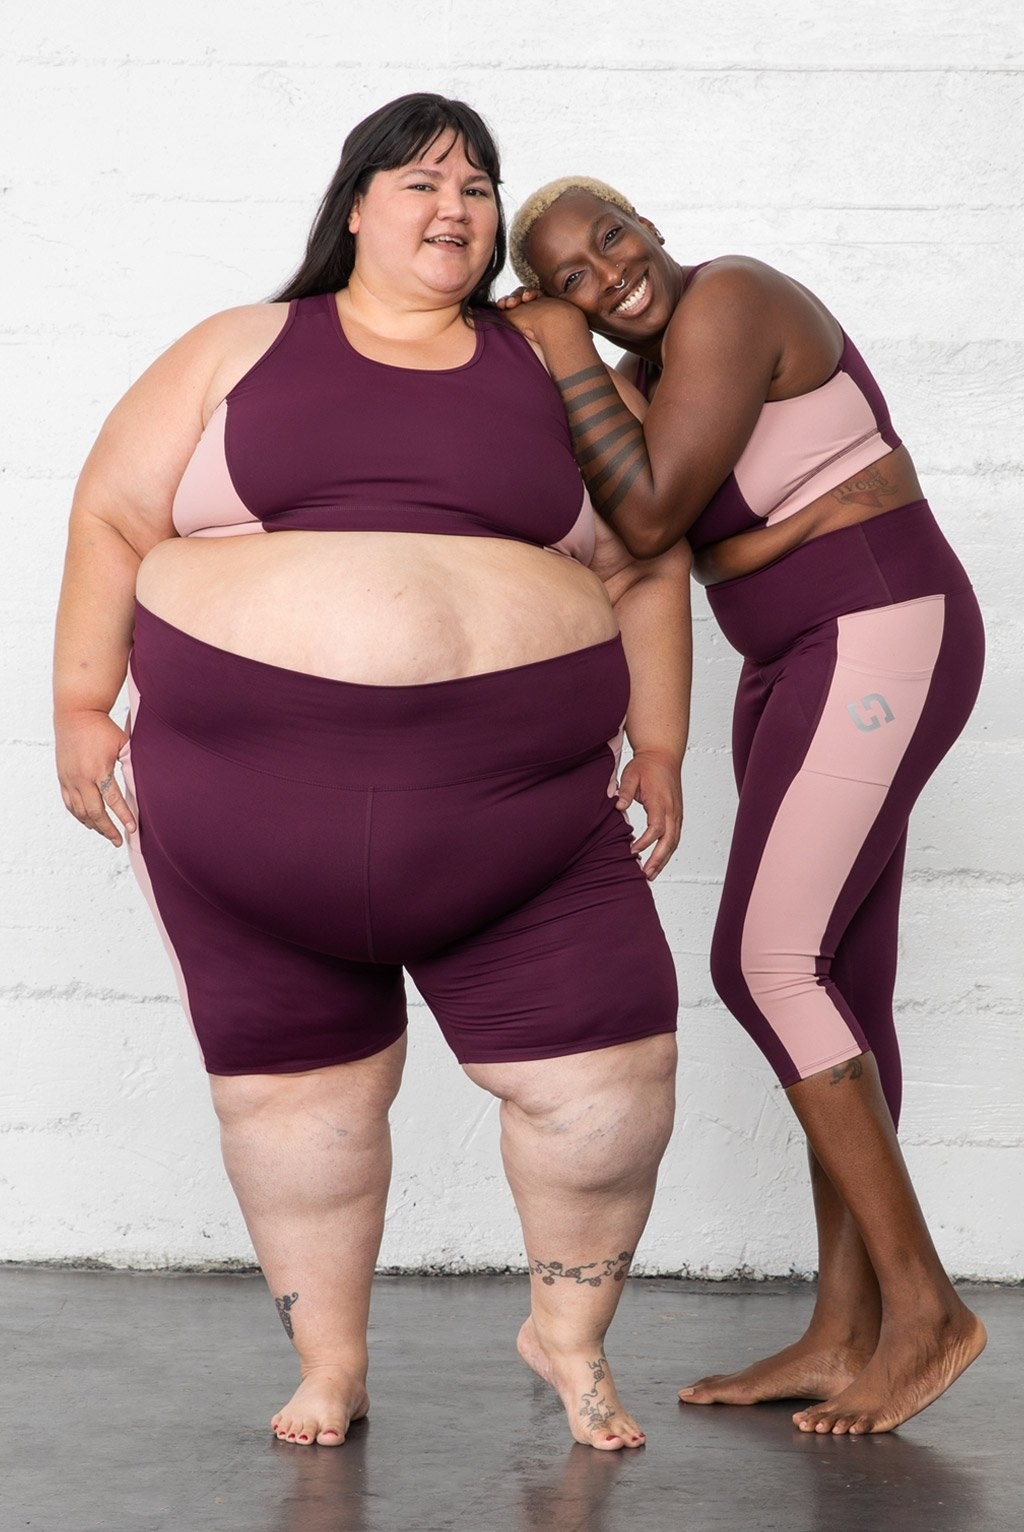 Models in a two tone pink and purple sports bra